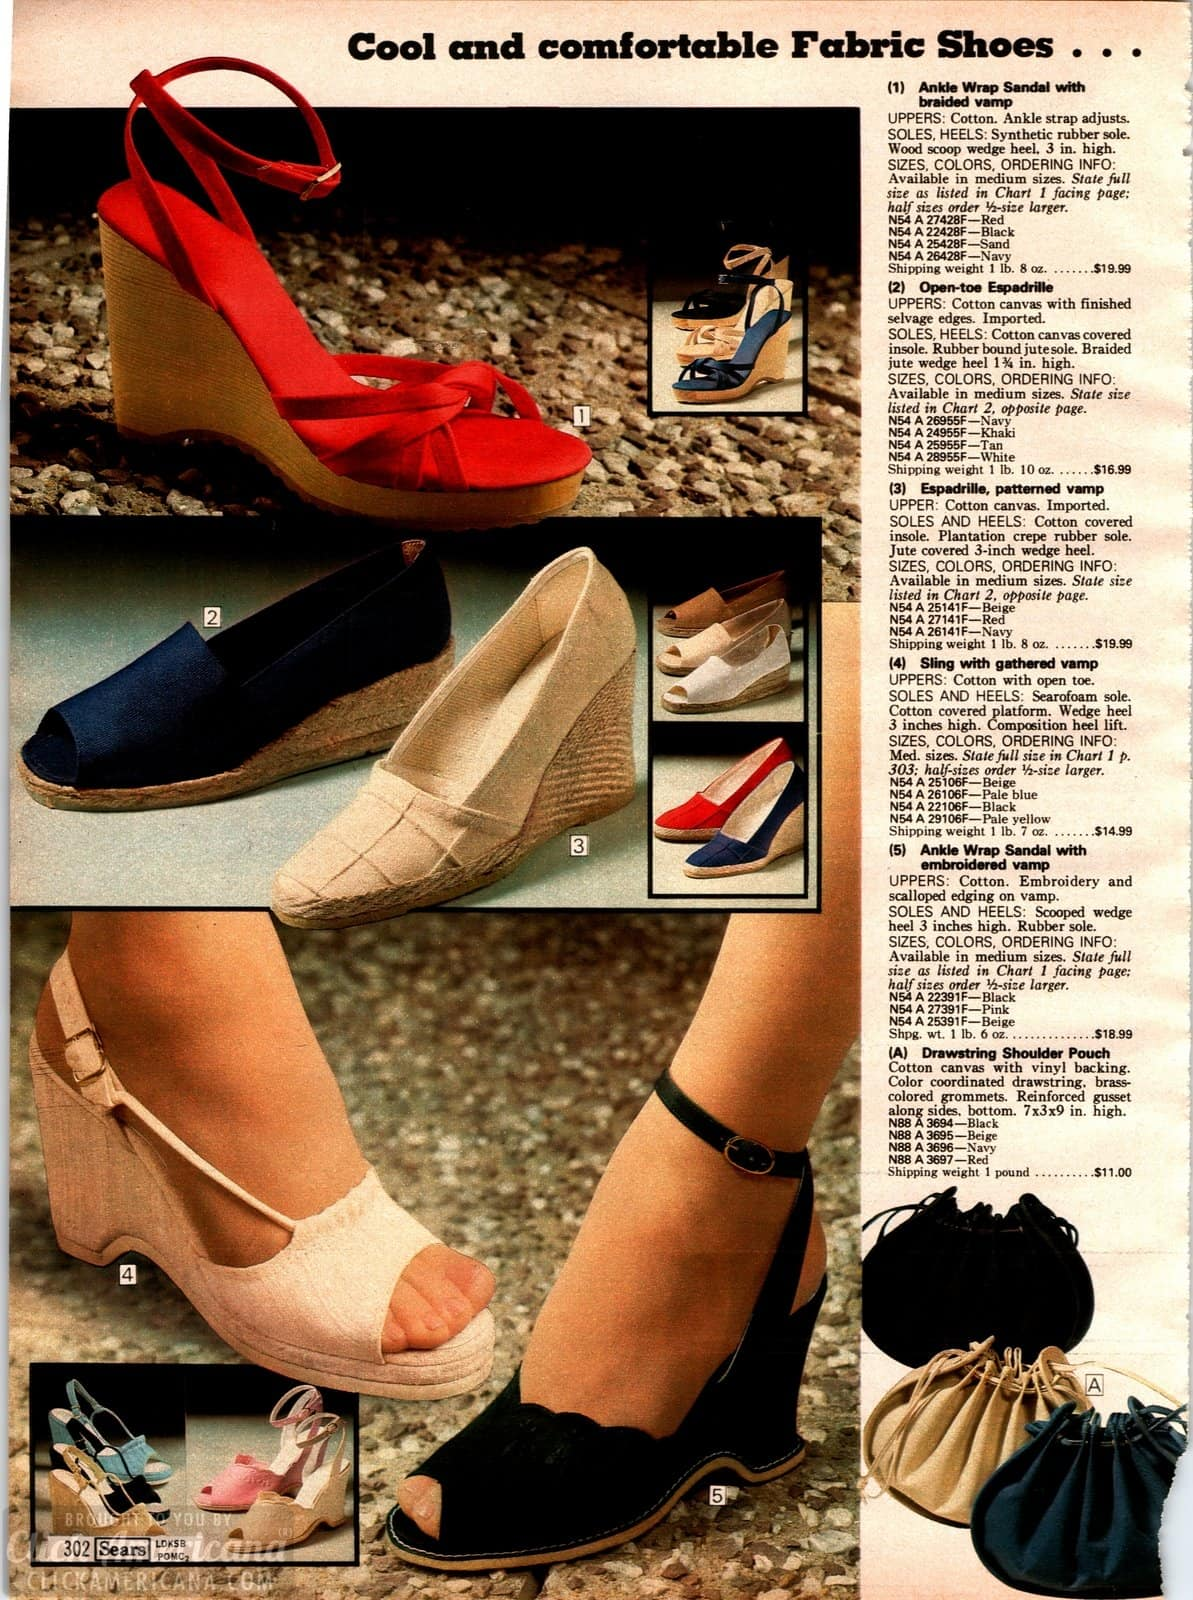 Cool and comfortable fabric heels and espadrilles from 1979